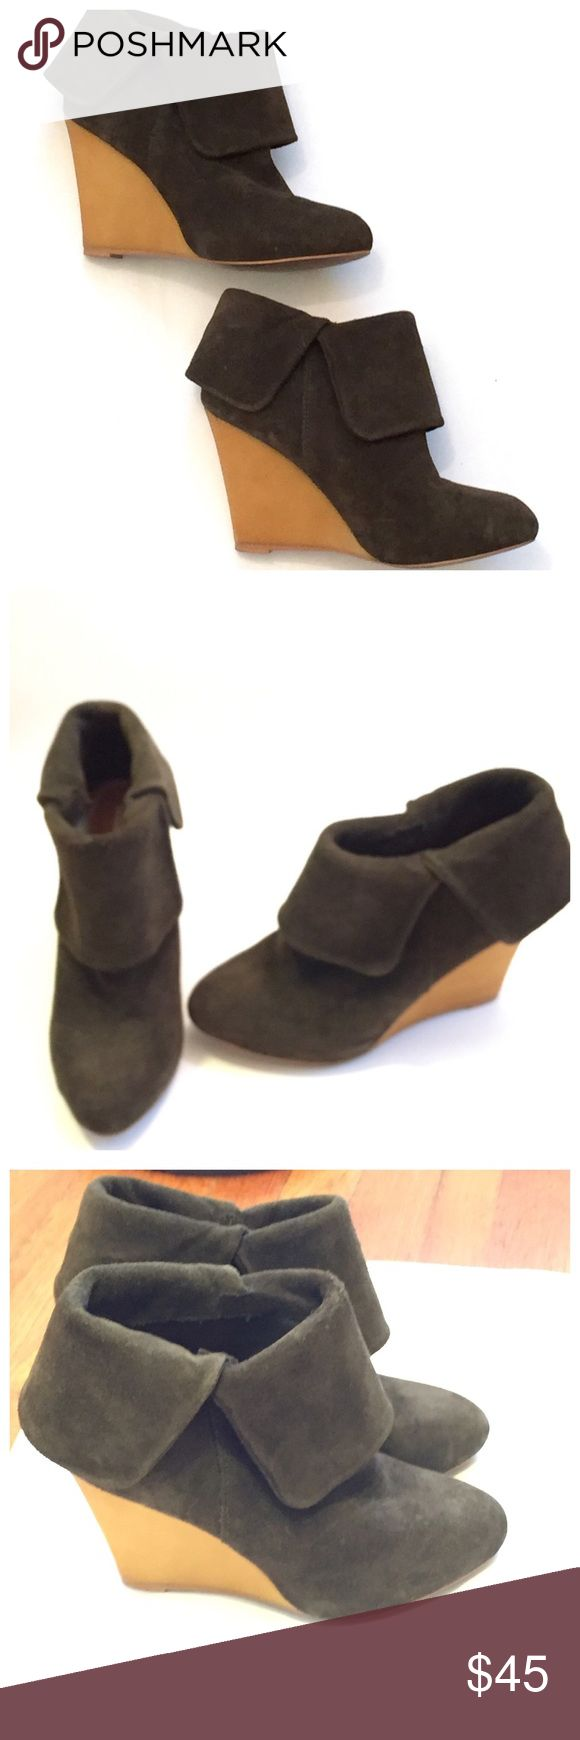 Zara Dark Green Suede Wedge Ankle Booties 8 ▪Stylish booties by Zara  ▪️Worn once. I just don't have much that goes with them.  ▪Size 38/8. Color is dark green! Best represented by last picture (very 1st one) ▪I can't find any material info written on the boots so I am unsure if they are real or faux suede. Most likely faux. Little to no marks on them. They are in great shape. ▪No trades!  ▪️Reasonable offers only! Zara Shoes Ankle Boots & Booties